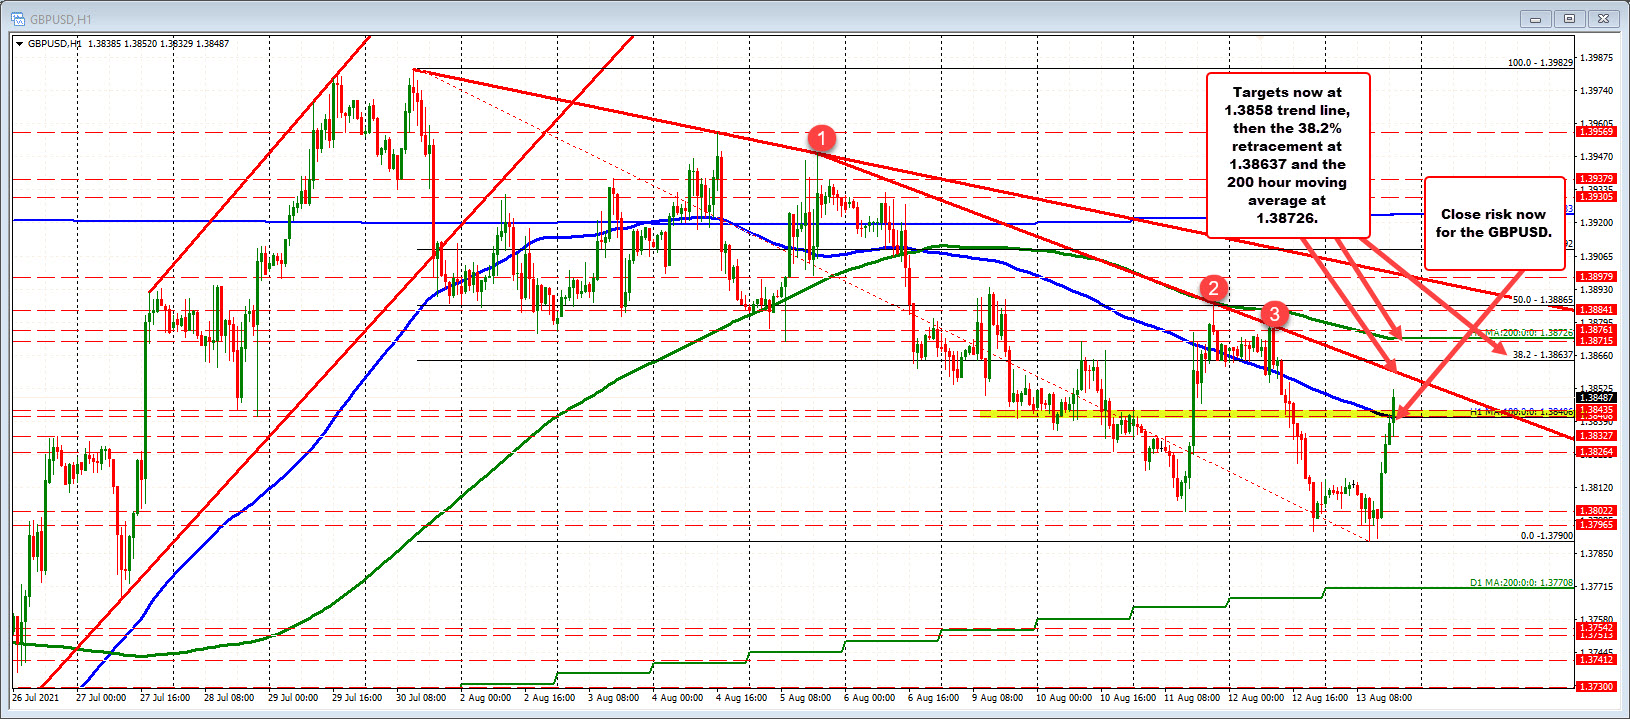 USD lower trend as trading